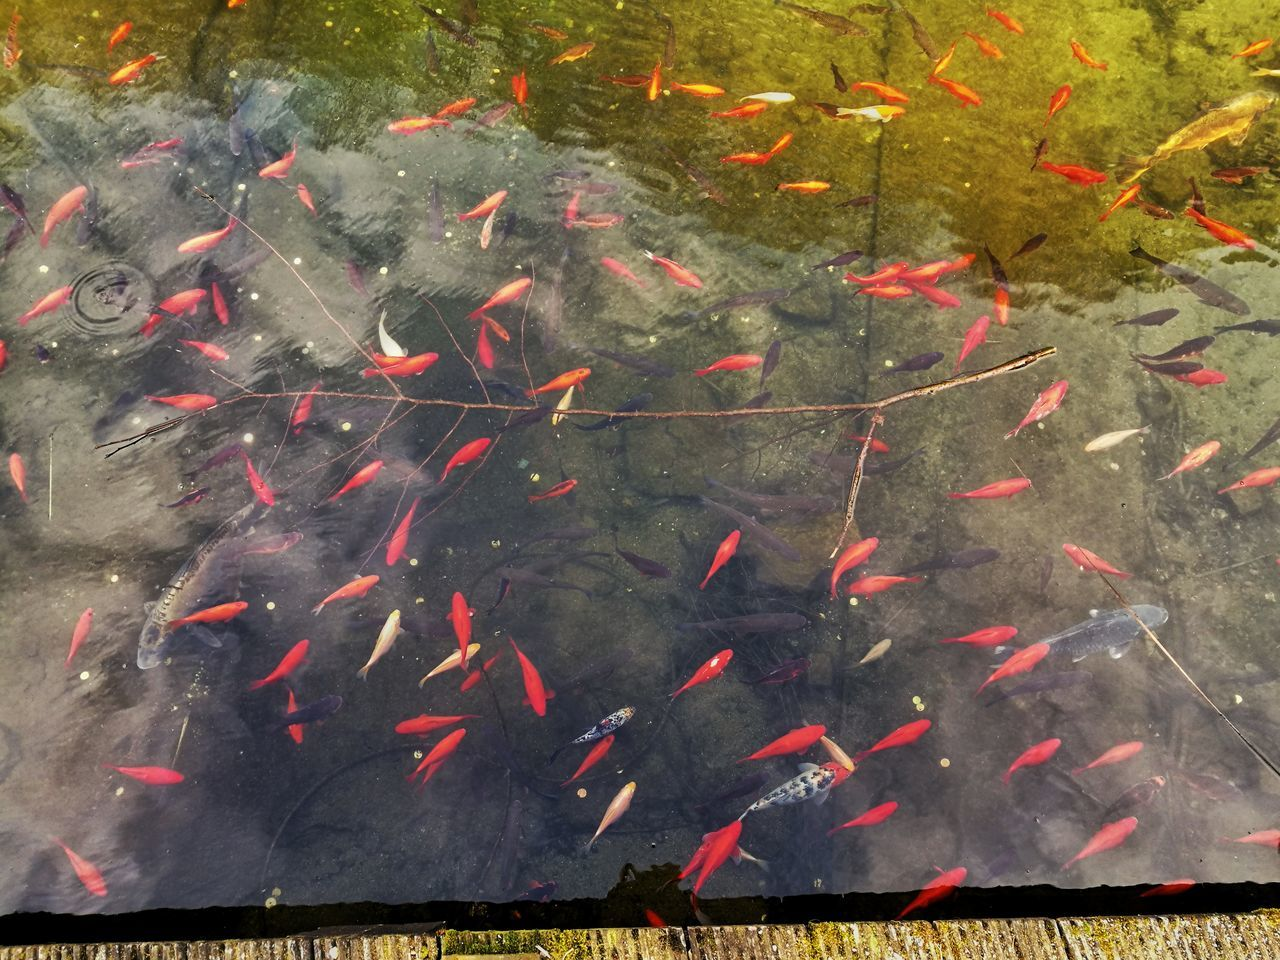 Fish Animal Themes Multi Colored Water Sea Life Koi Carp Swimming School Of Fish Carp High Angle View Large Group Of Animals No People Outdoors Day Close-up